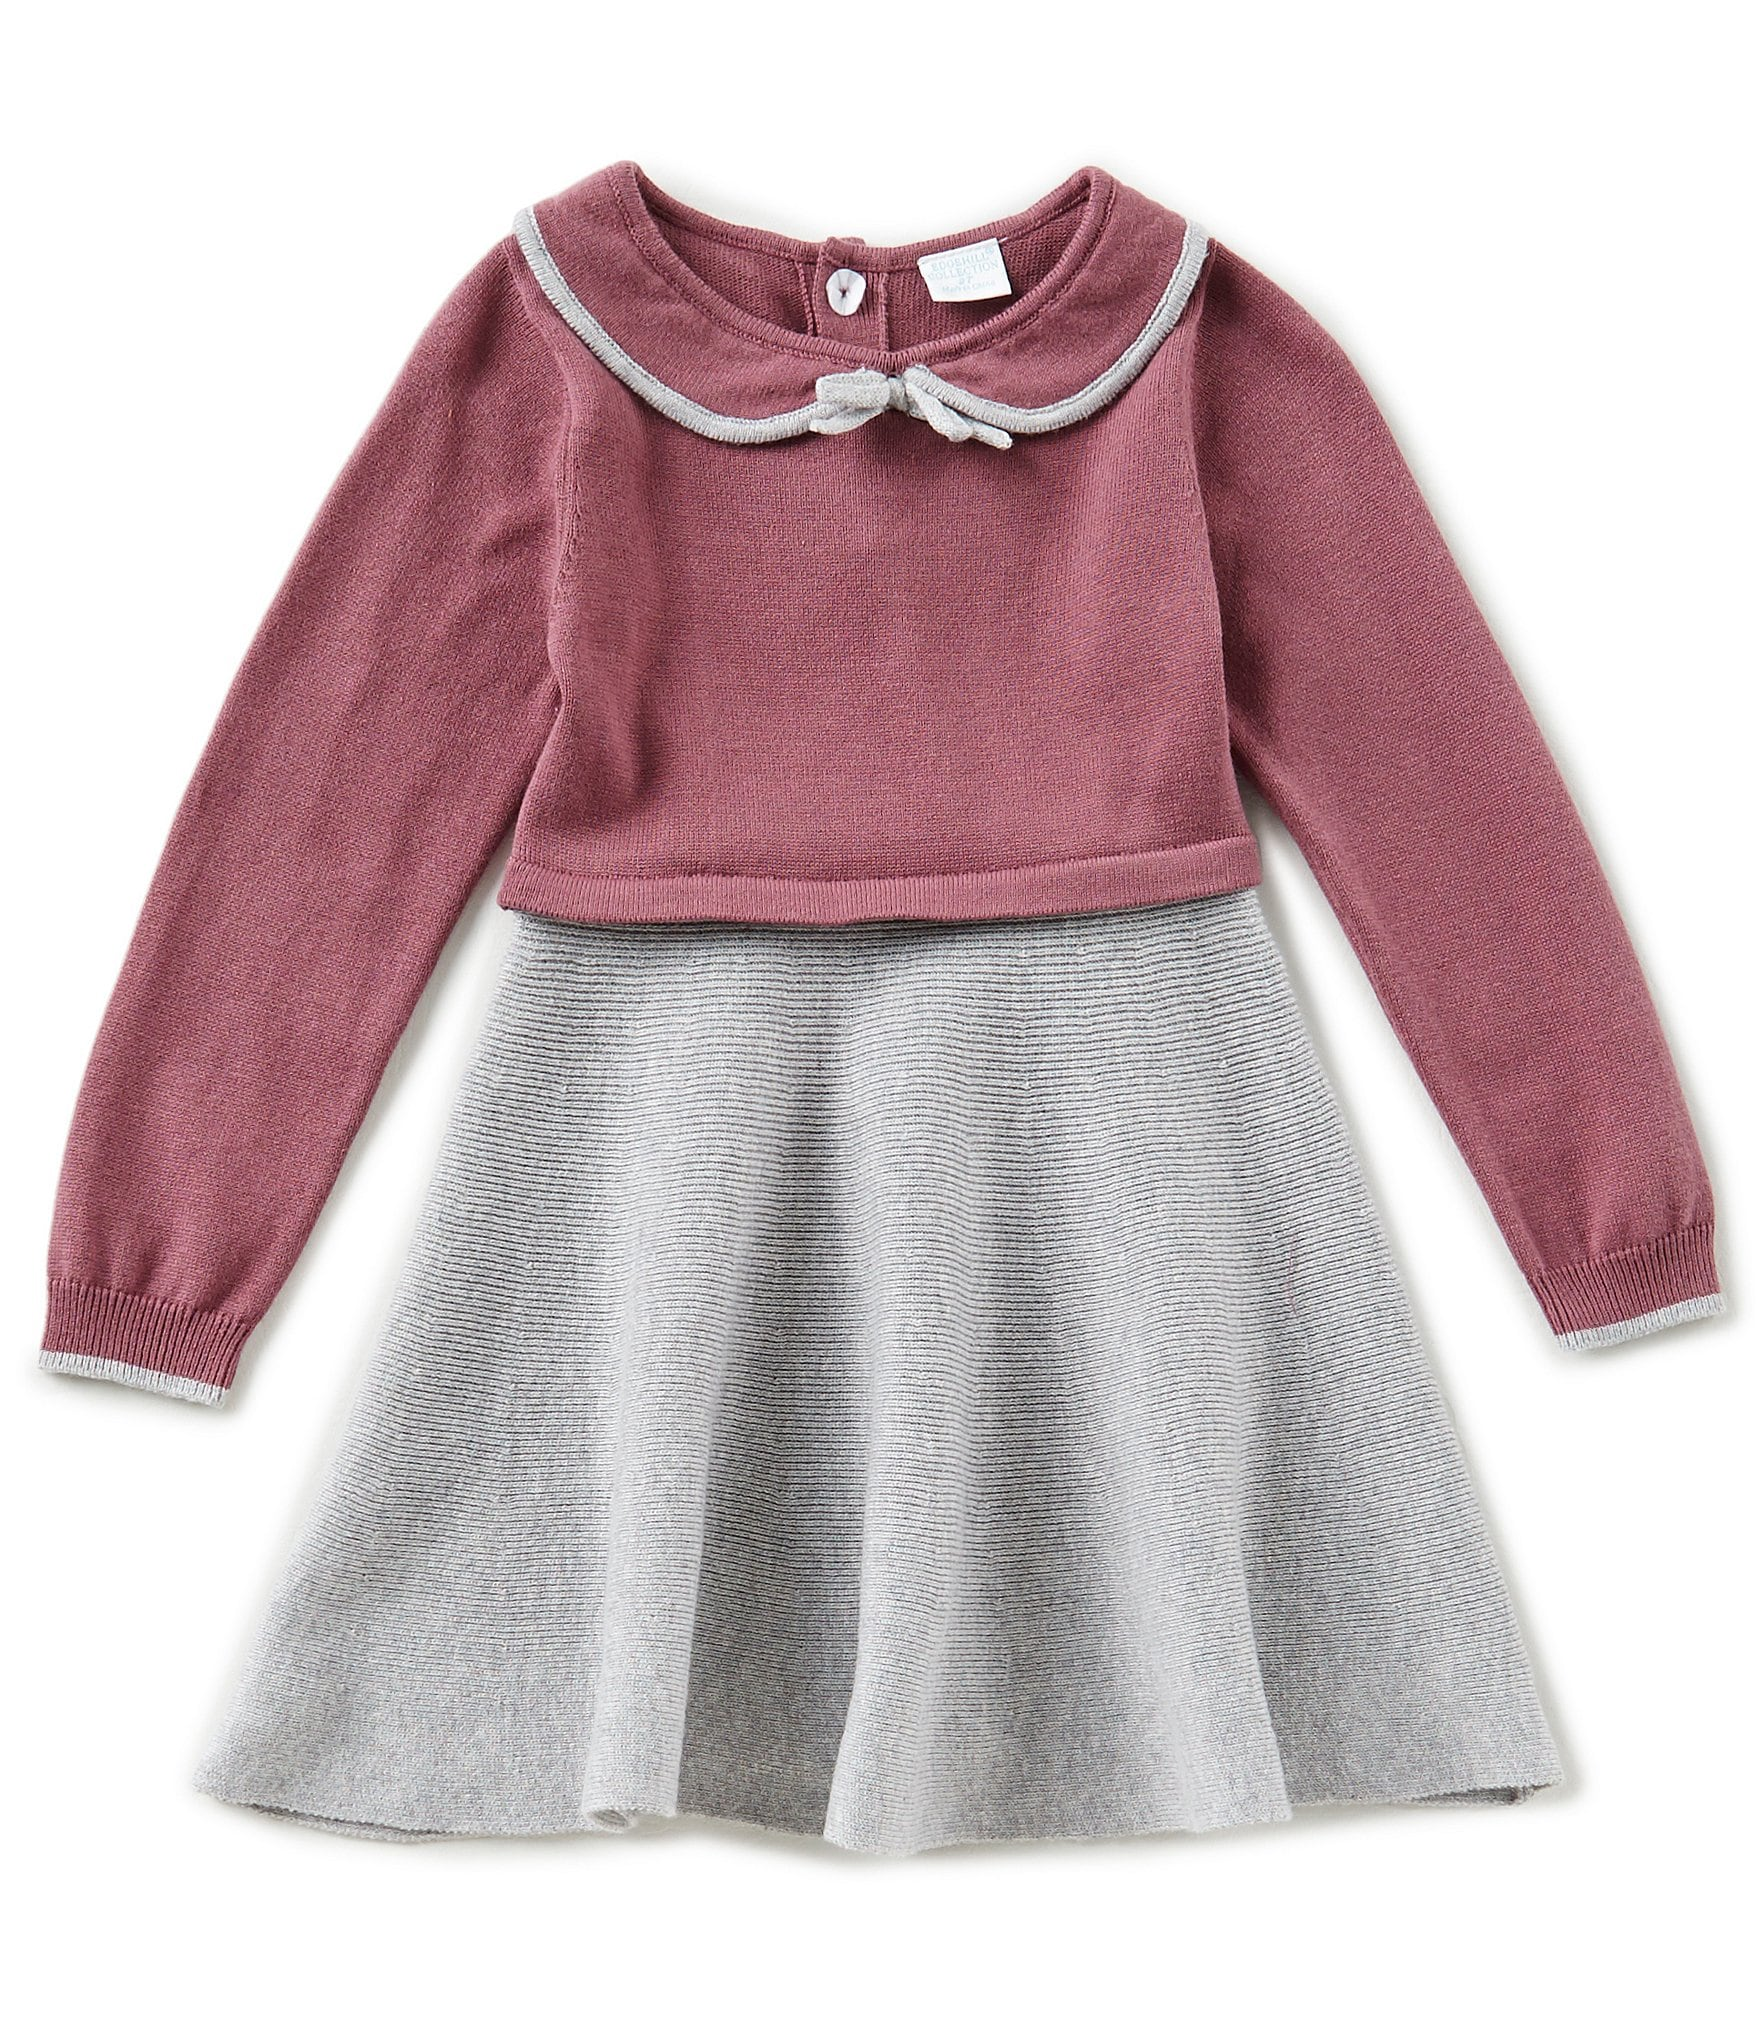 Shop for sweater dress 2t online at Target. Free shipping on purchases over $35 and save 5% every day with your Target REDcard.